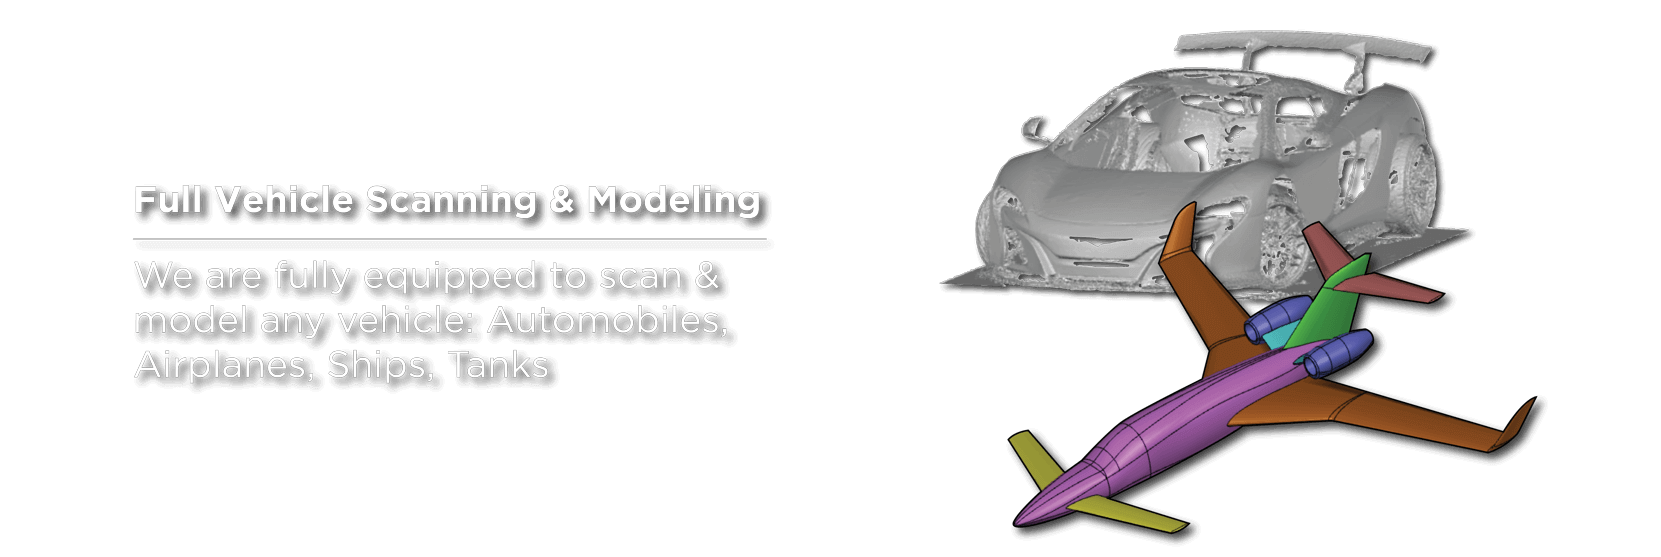 3d laser scanning cars and planes